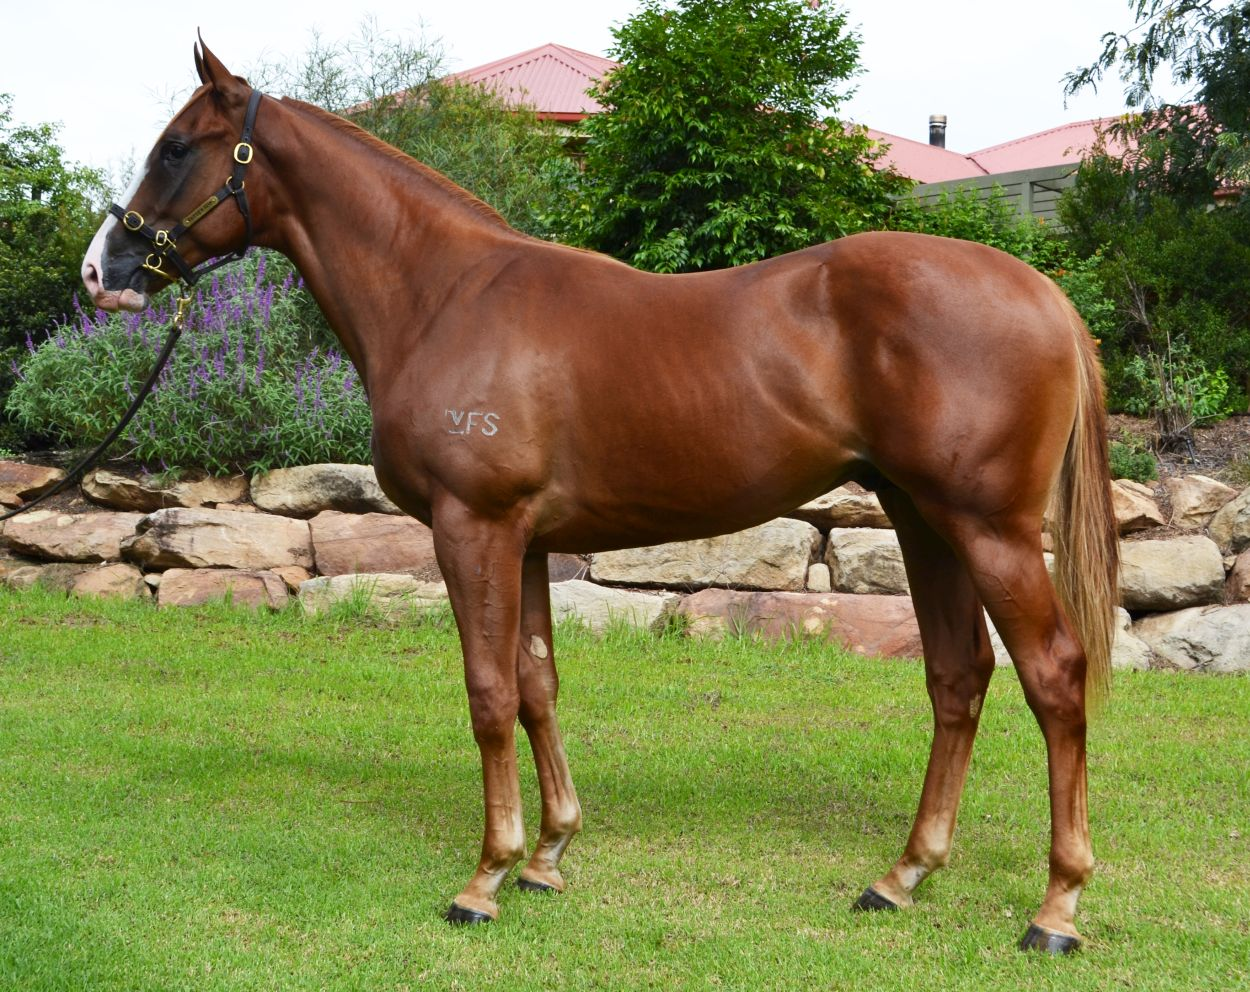 Lot 449 Chestnut Colt by Shooting to Win out of Eye For Fun